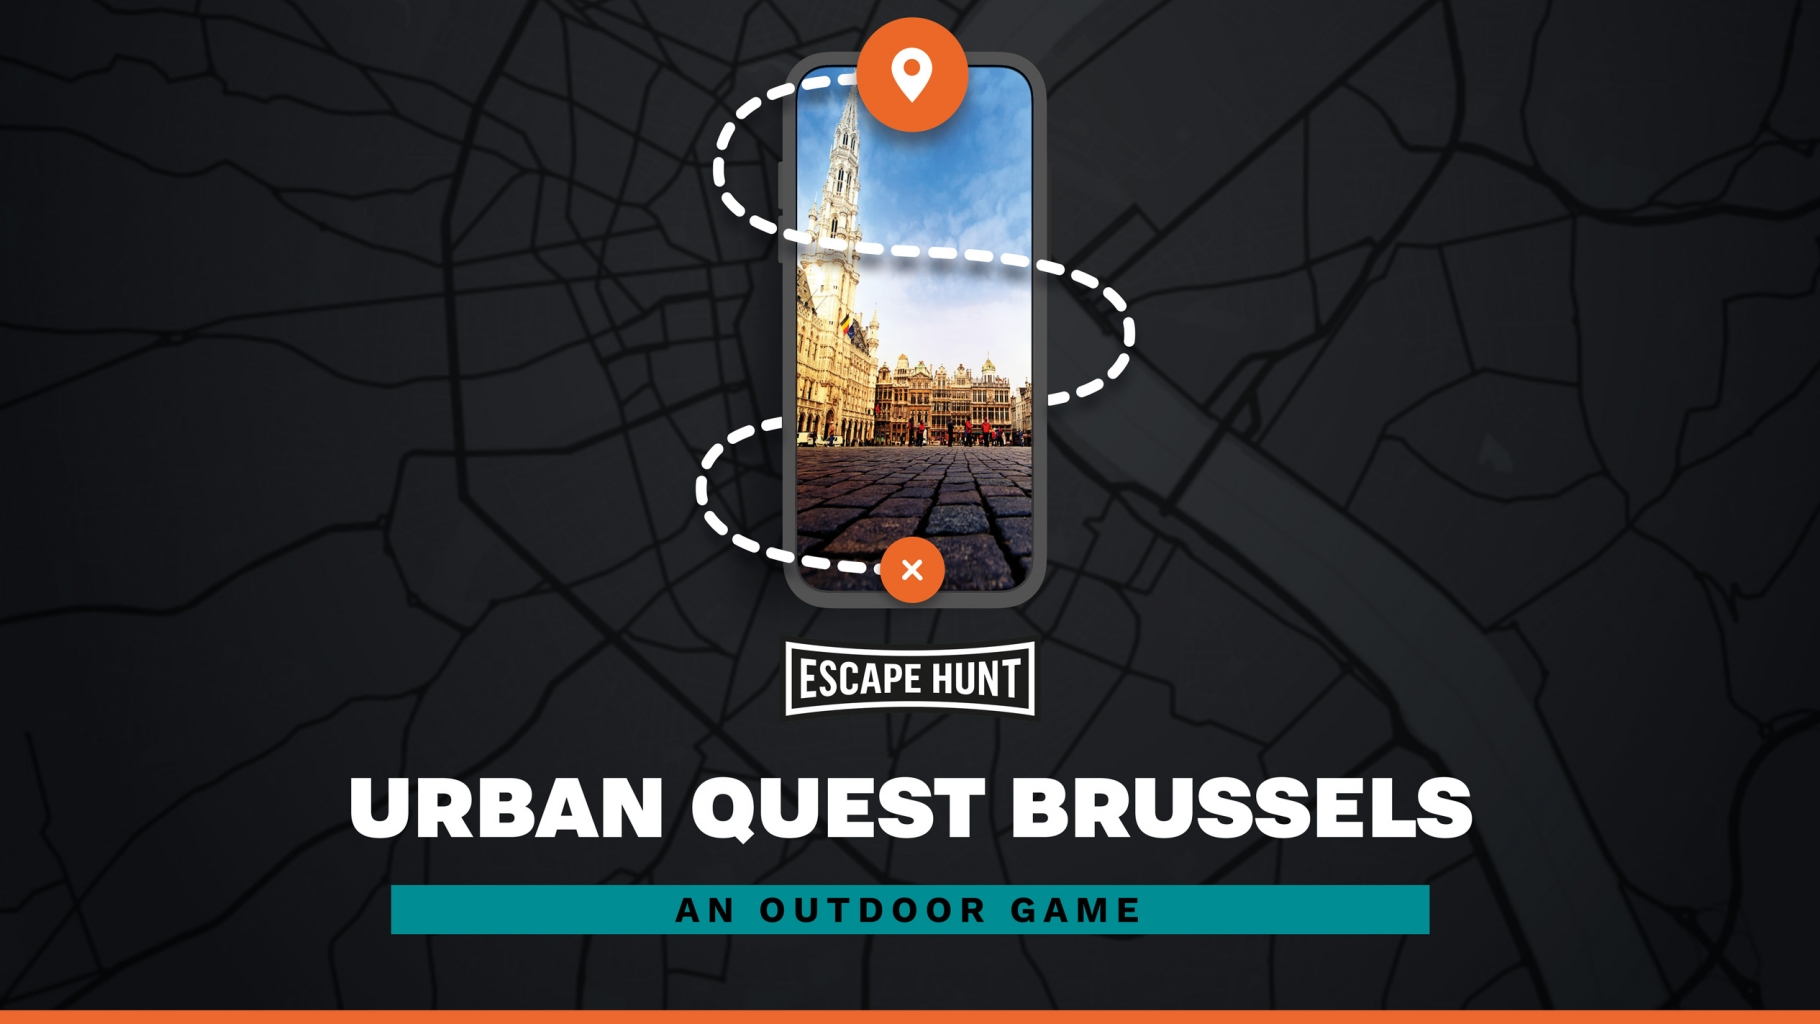 URBAN QUEST BRUSSELS